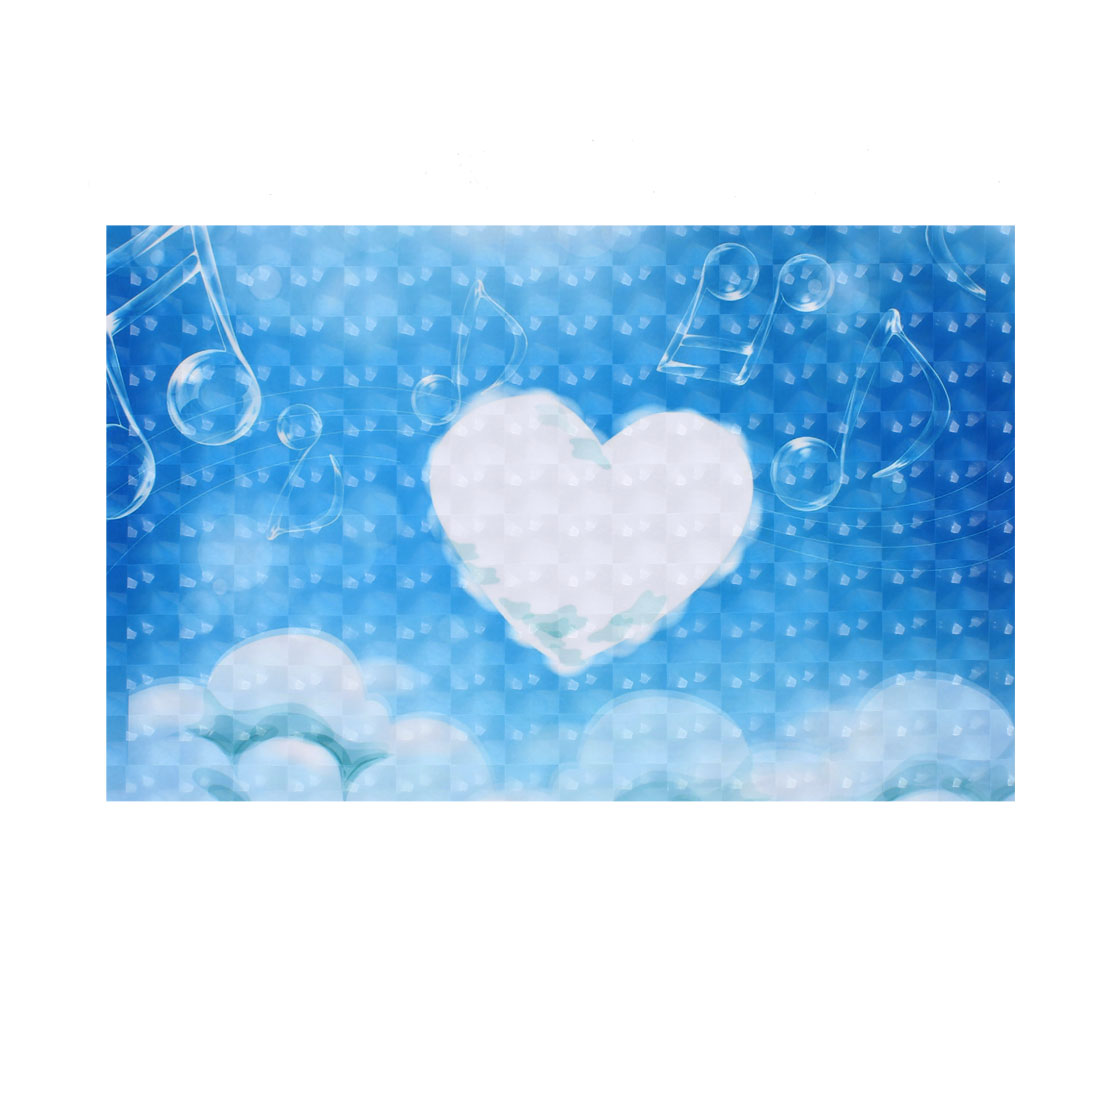 "White Heart Shape Cloud Sky Blue Decorative 3D Sticker Decal for 15"" Laptop PC"